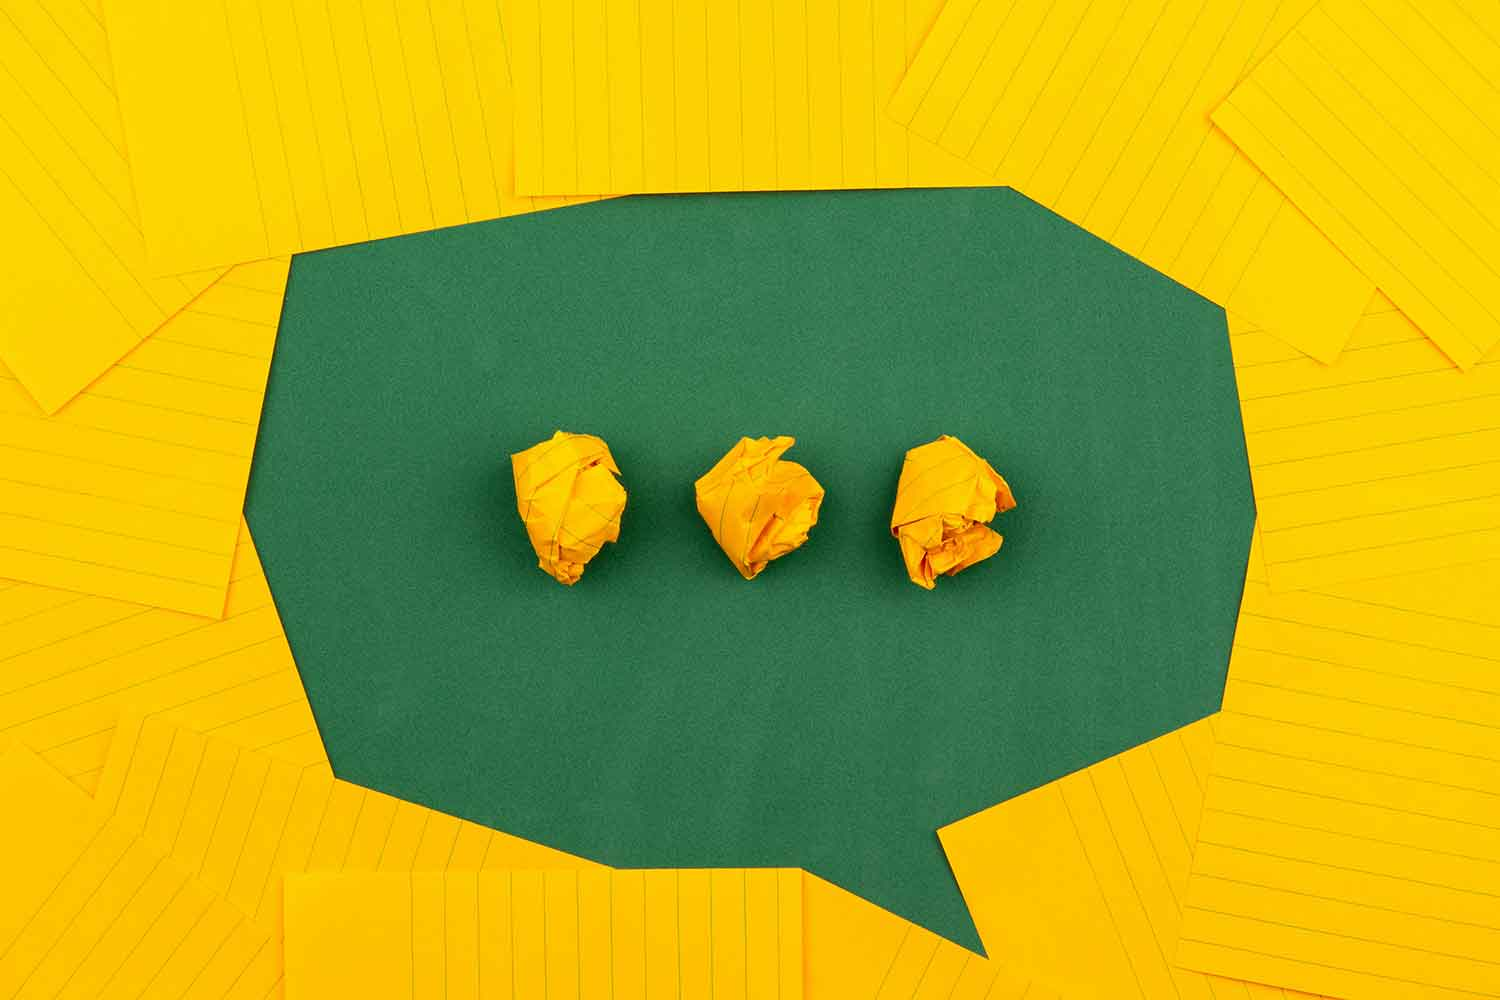 orange sheets of paper lie on a green school board and form a chat bubble